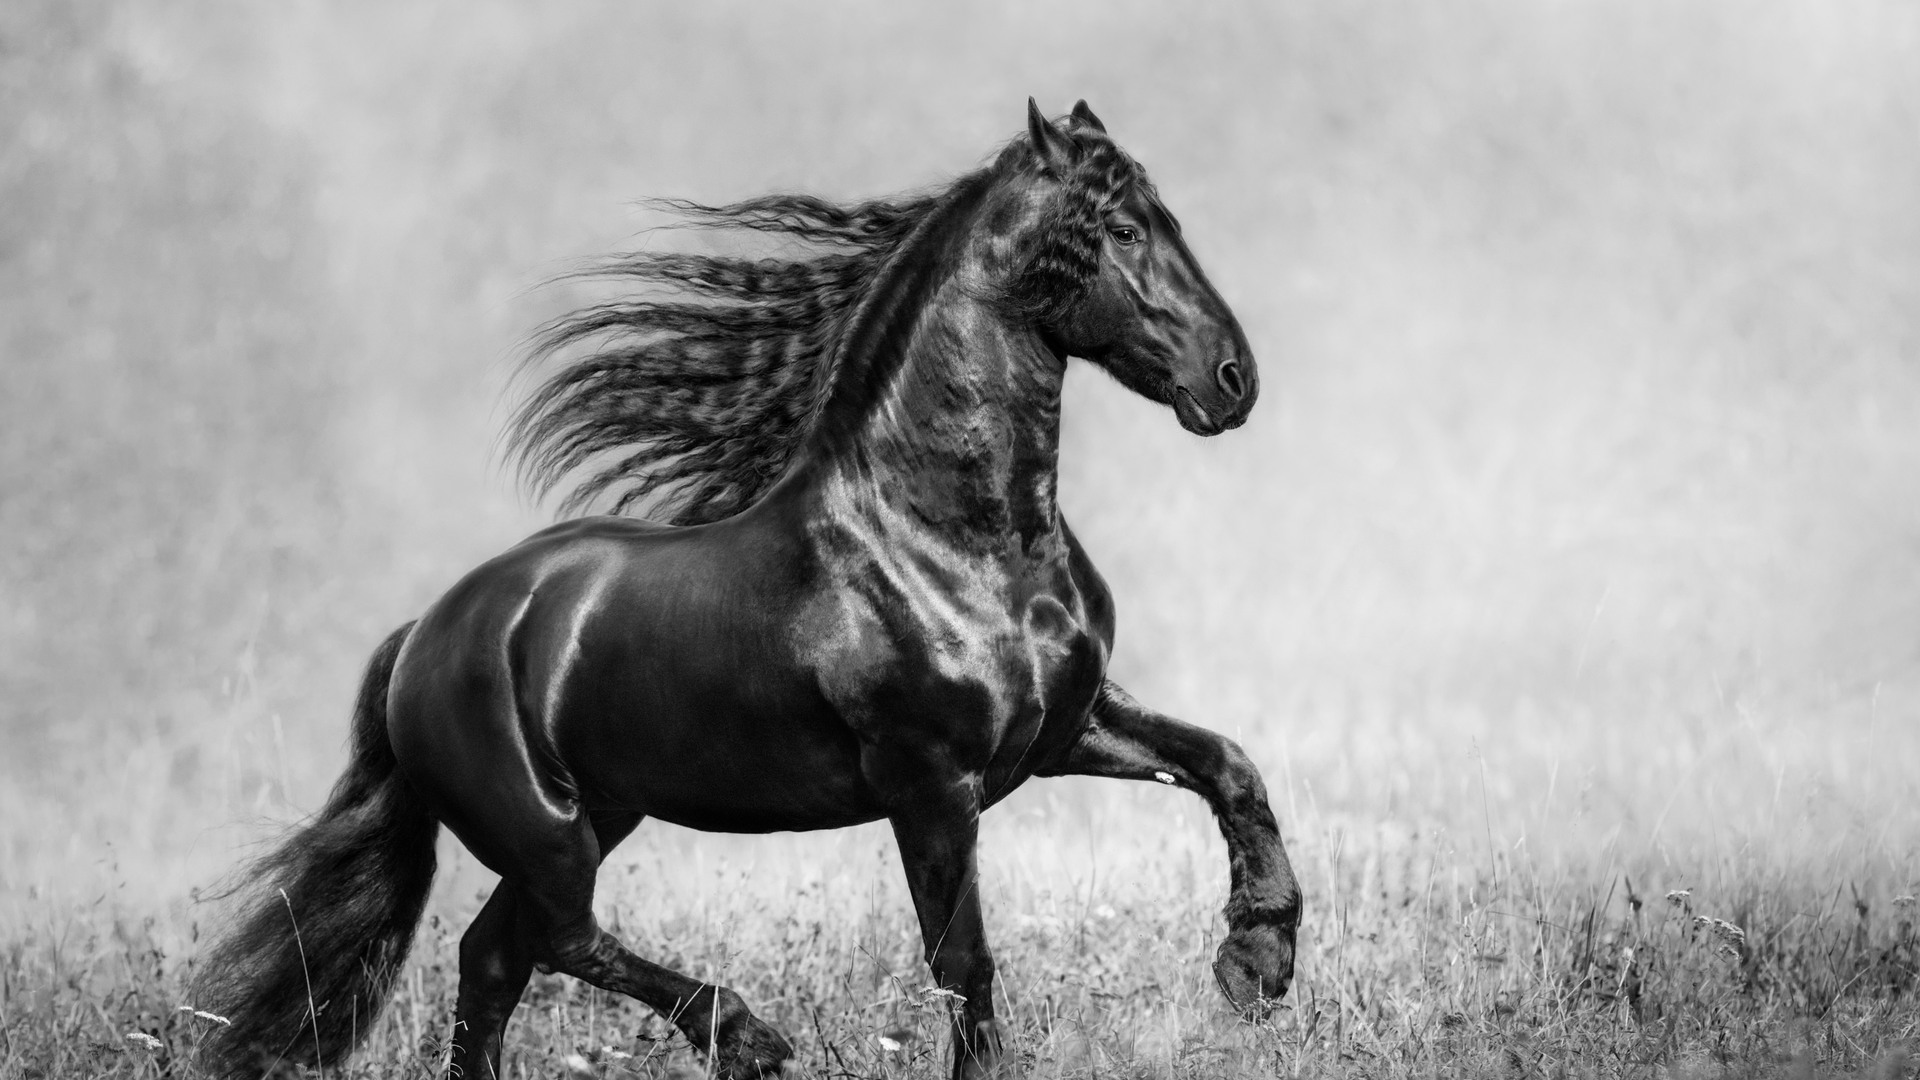 1920x1080 Horse Black And White Laptop Full Hd 1080p Hd 4k